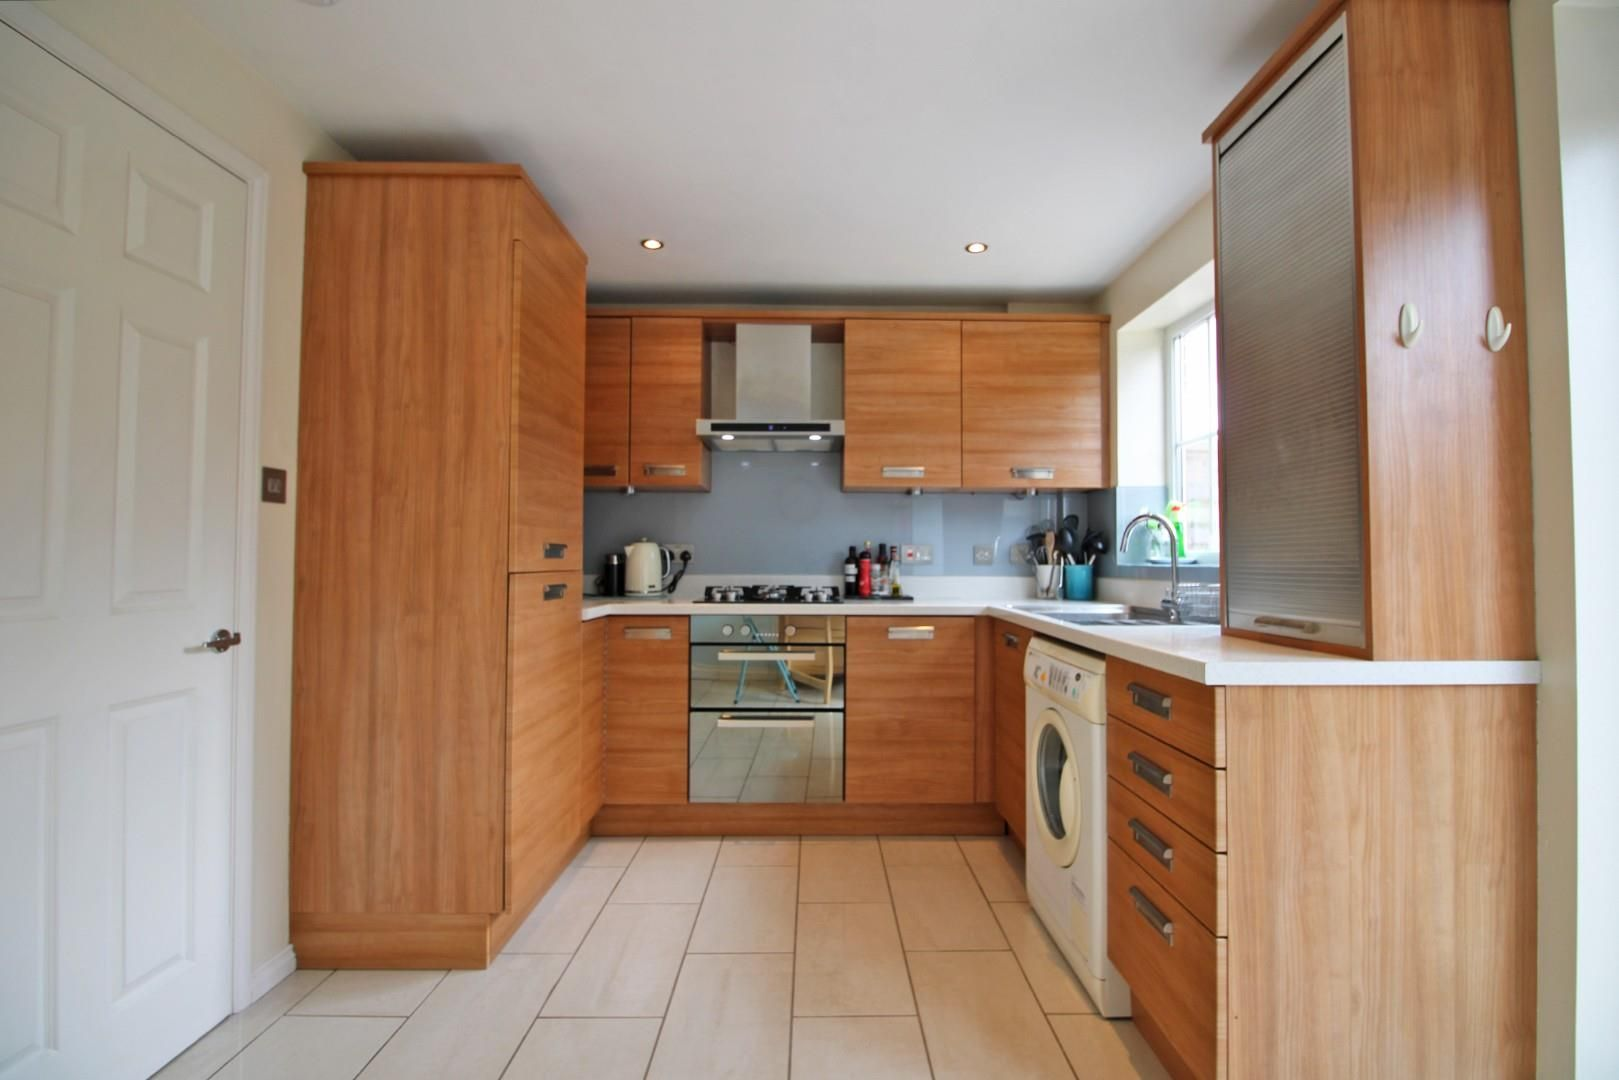 3 bed end of terrace for sale in Lower Earley  - Property Image 3